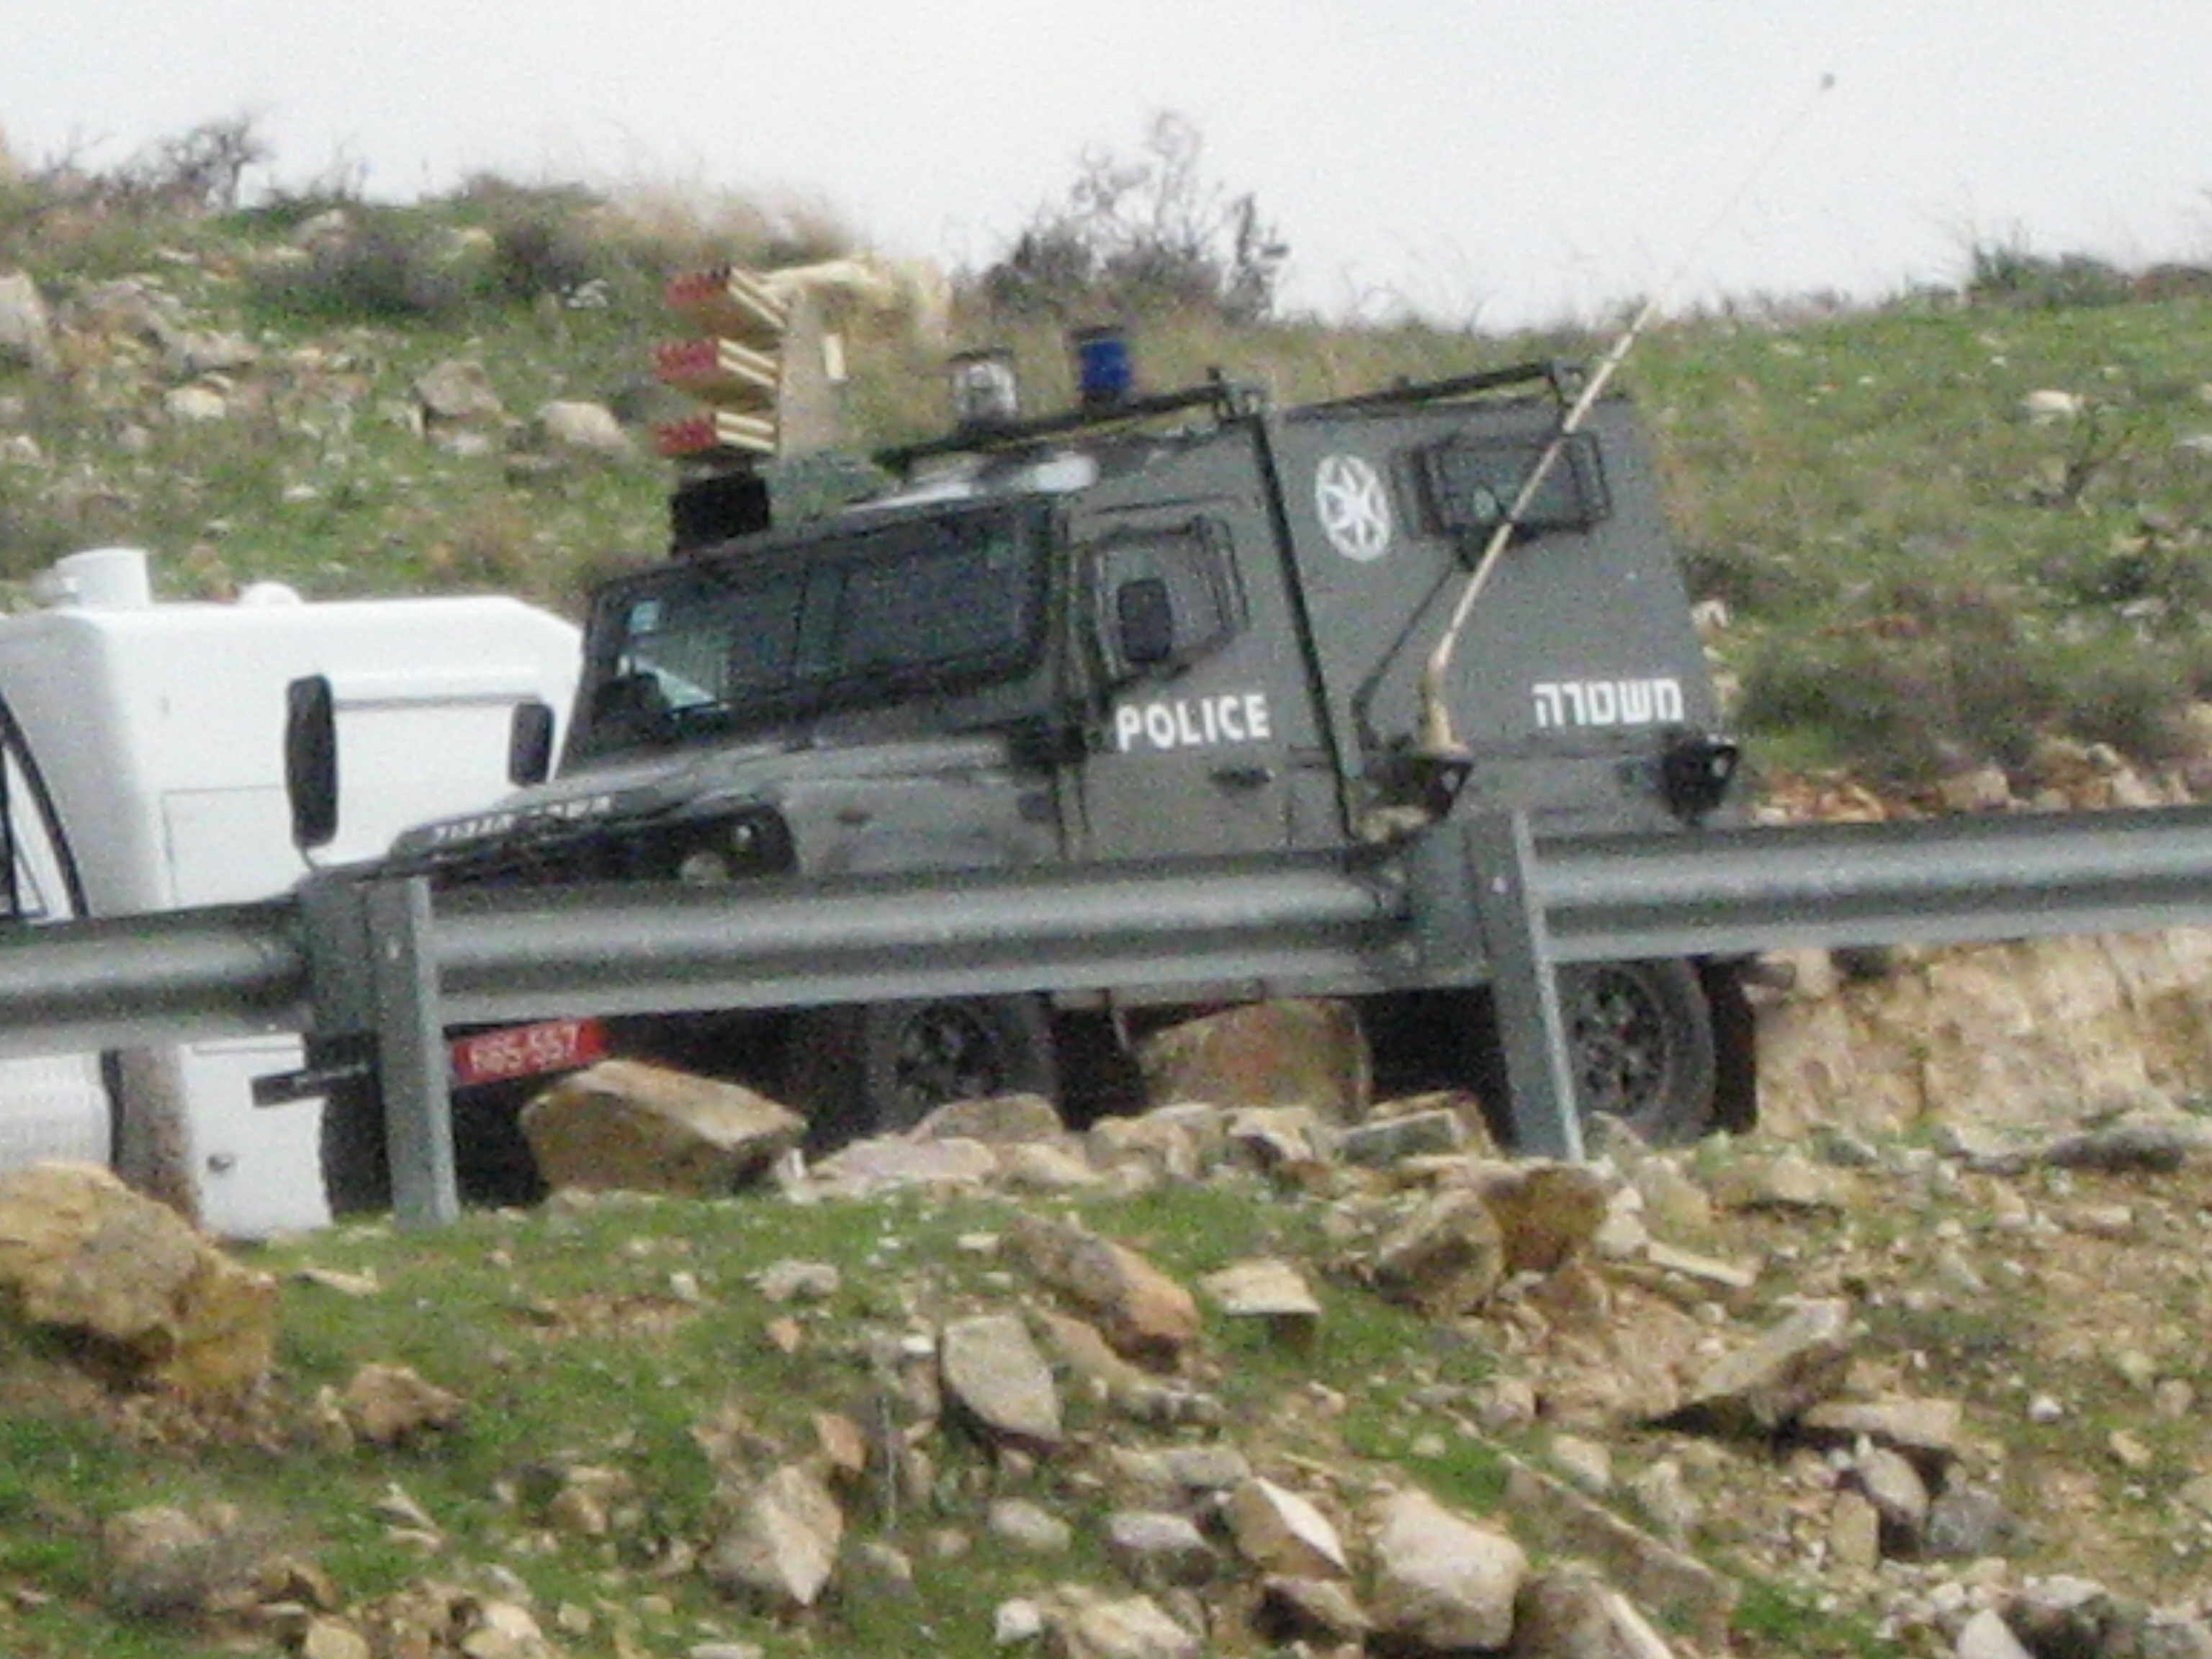 Israeli Police vehicle with mounted tear gas launcher at an anti occupation demonstration in the Palestinian village of Nabi Saleh - 11/1/13